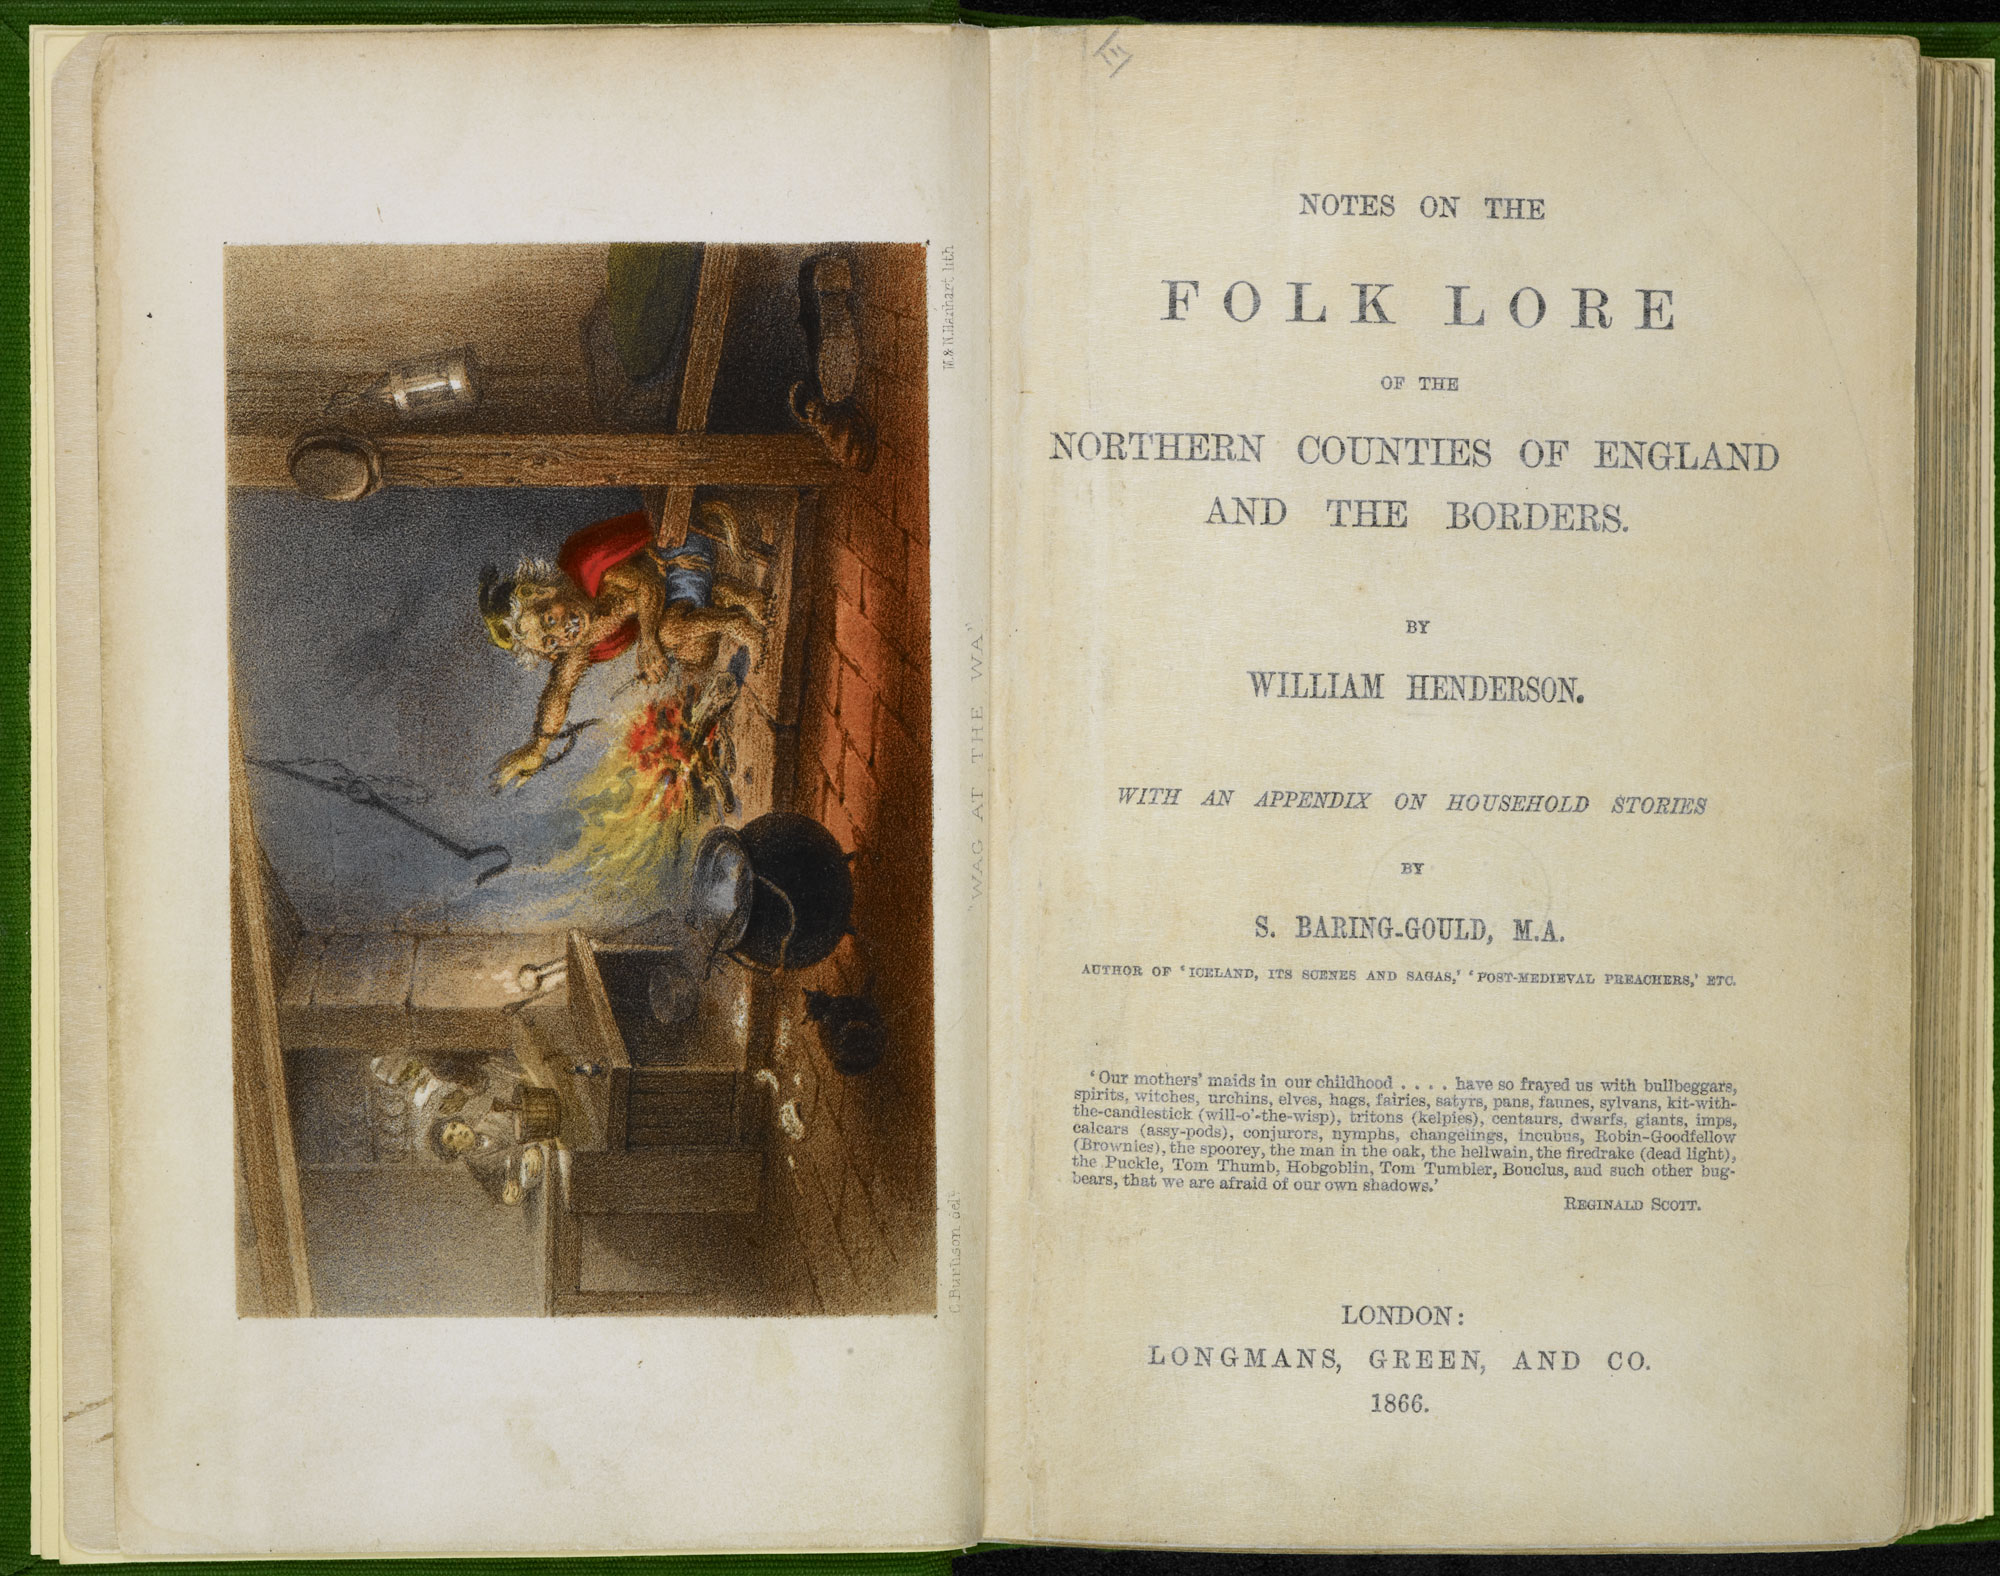 Notes on the Folk Lore of the Northern Counties of England and the Borders [page: frontispiece and title page]